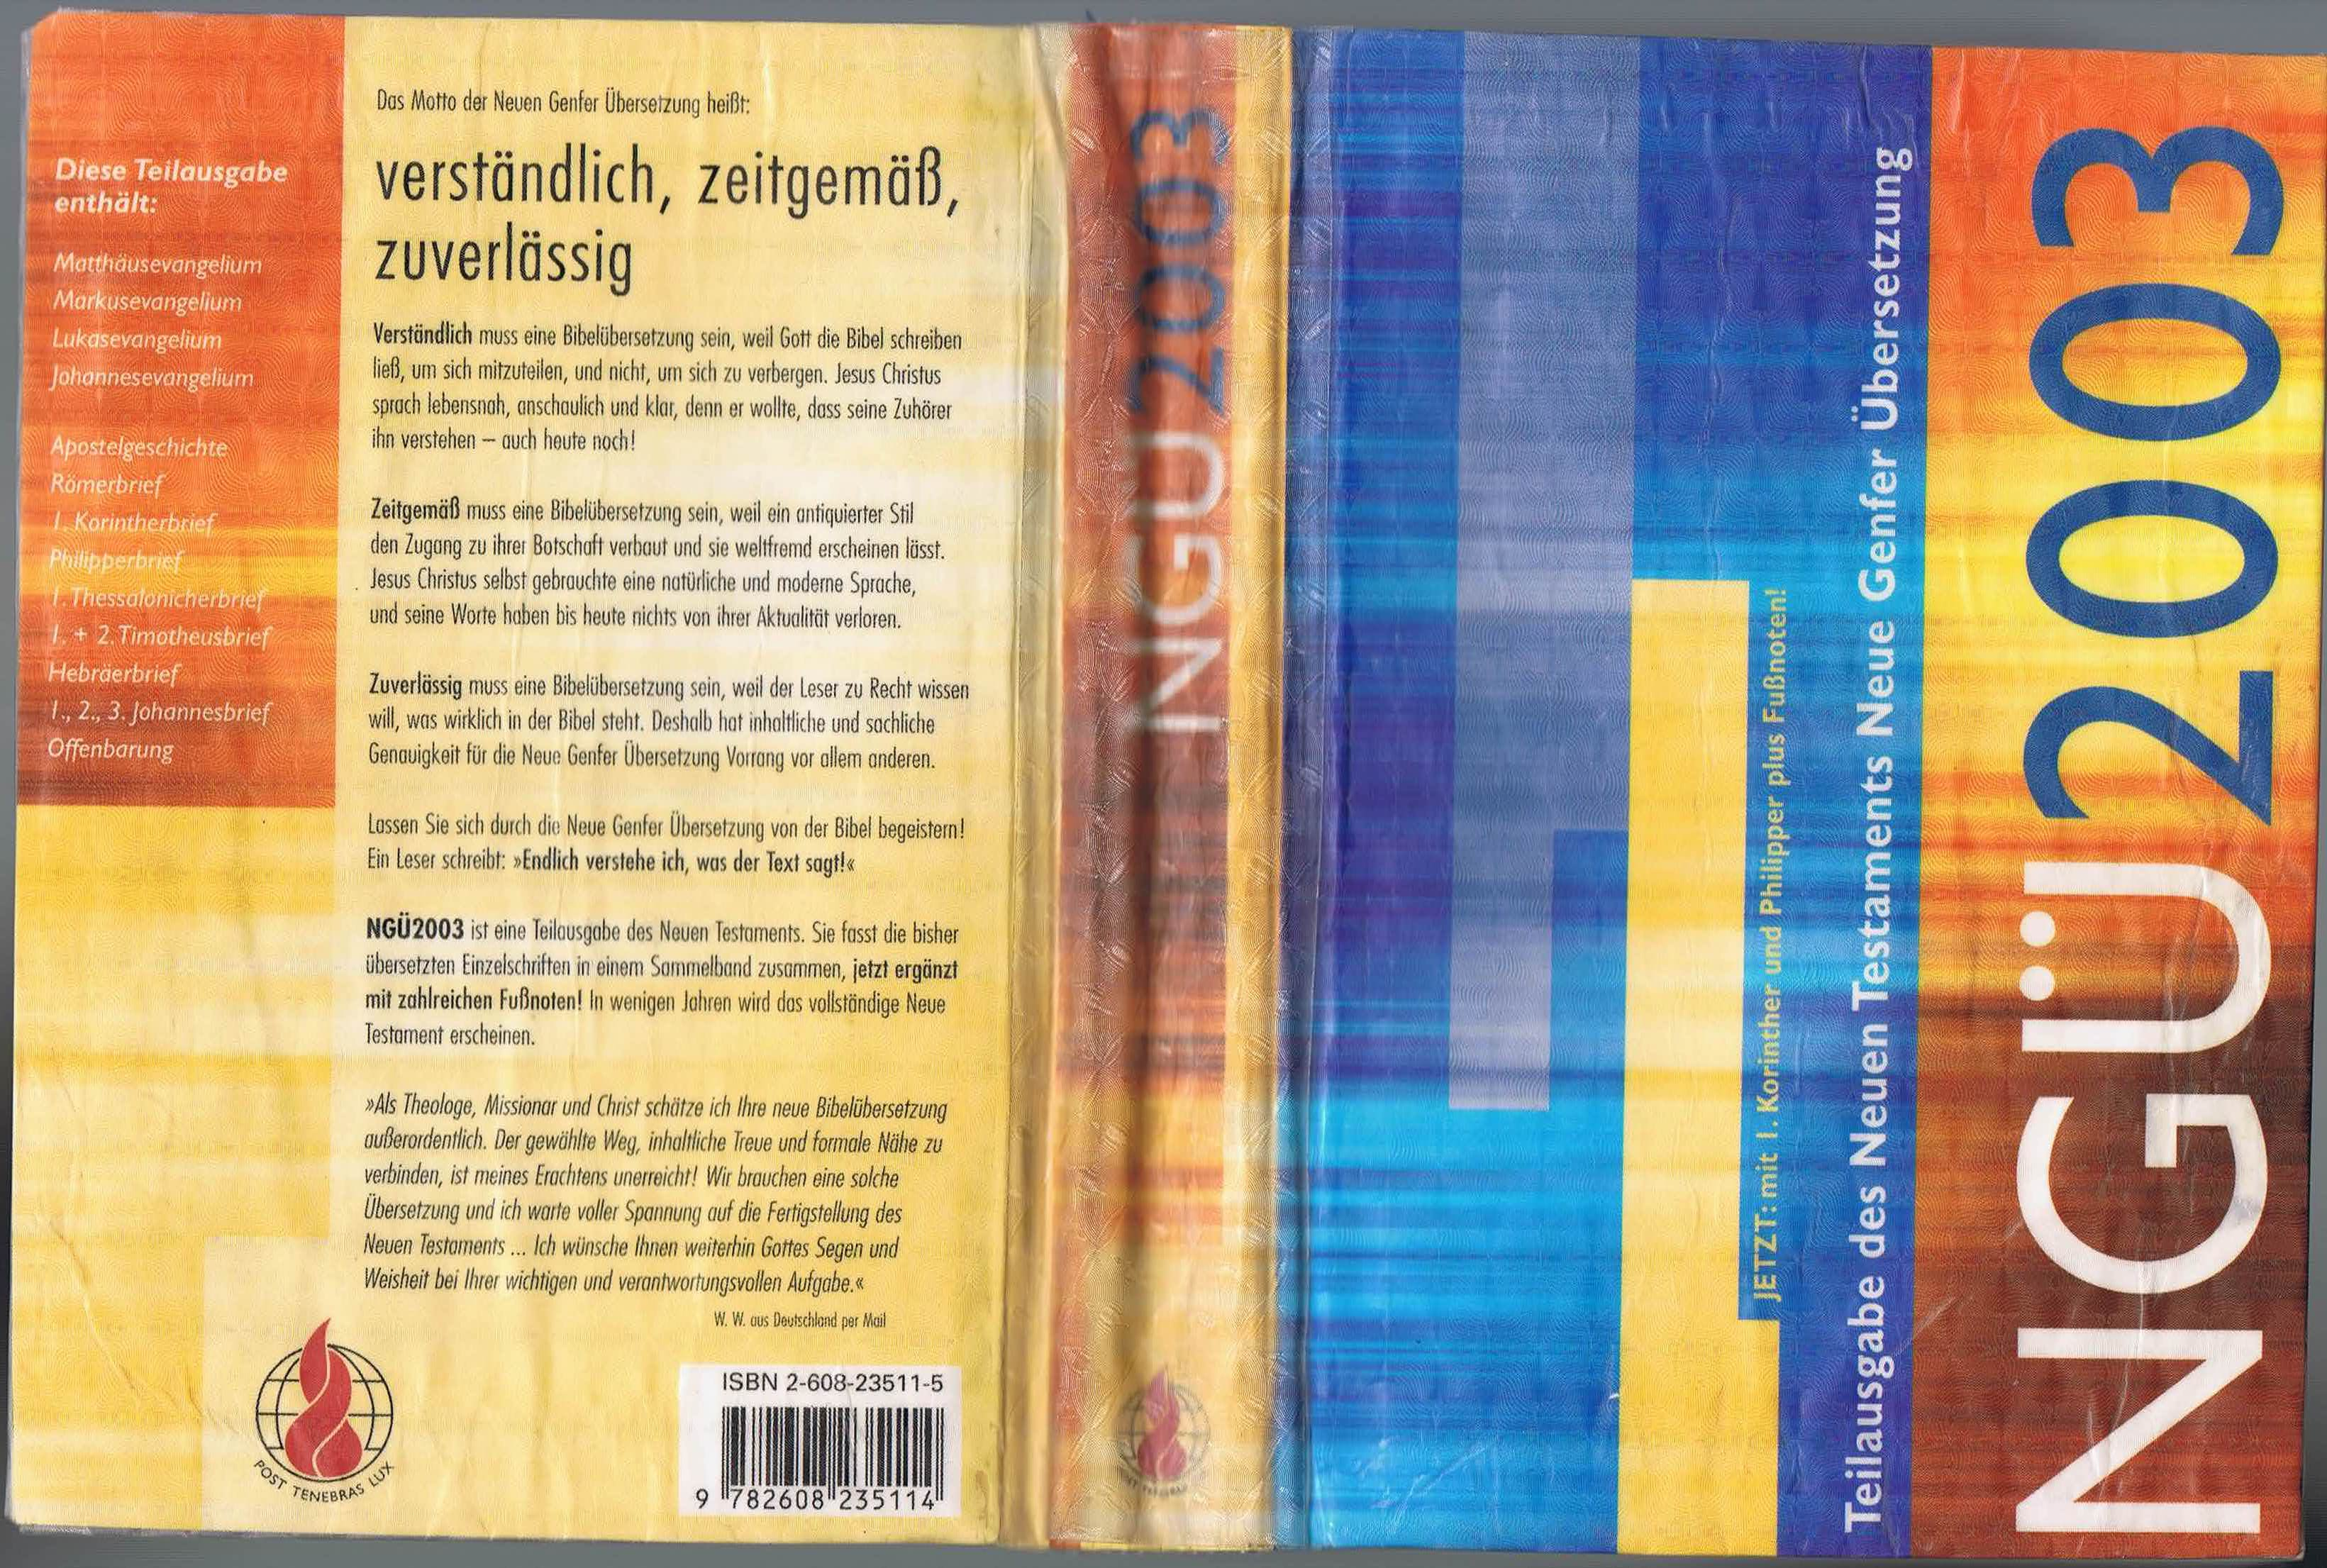 ngue-2003-teil-cover